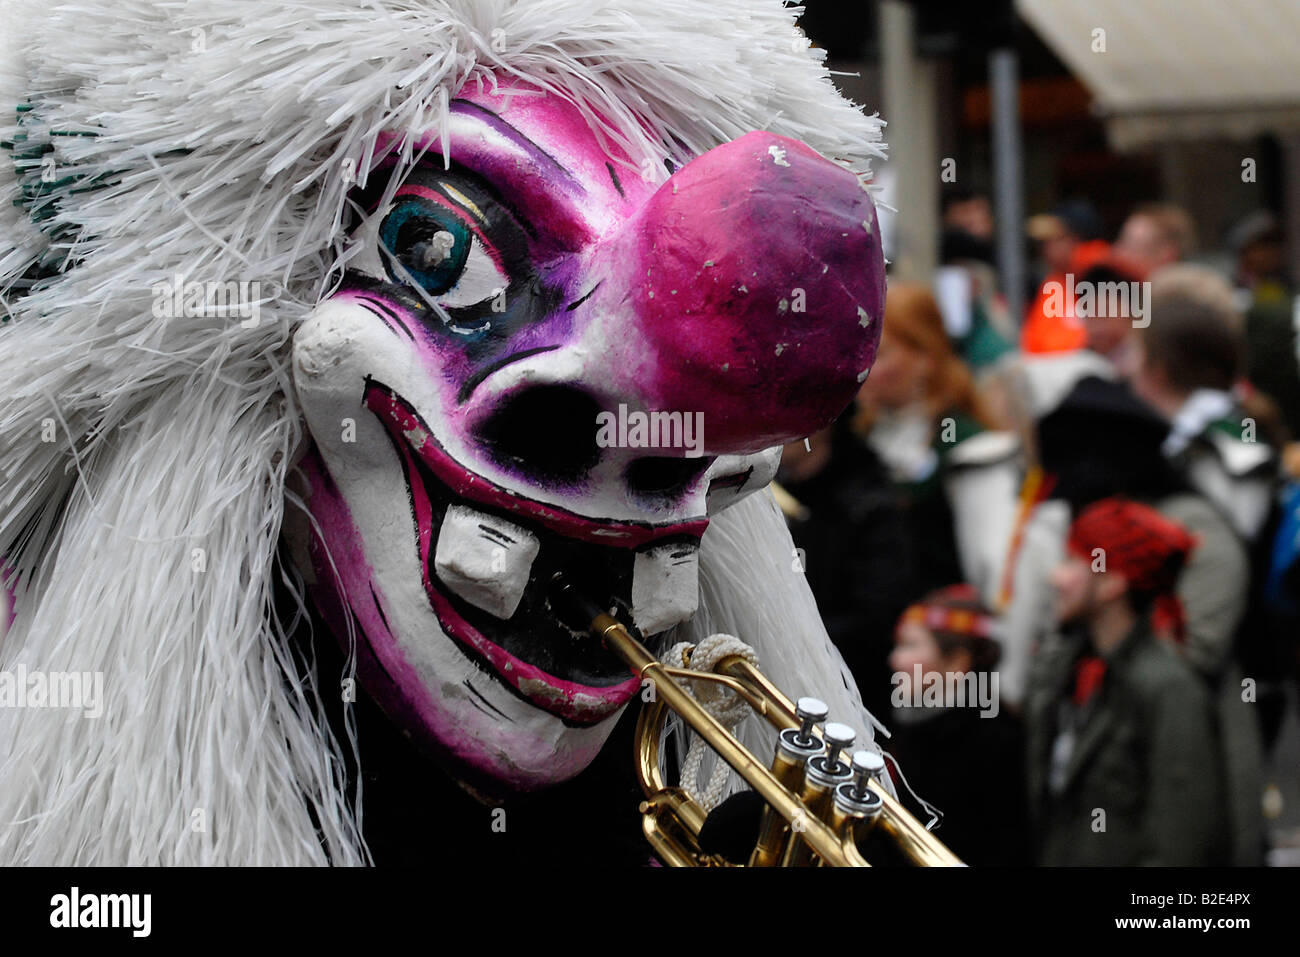 Scenes from carnival parade in Germany - Stock Image